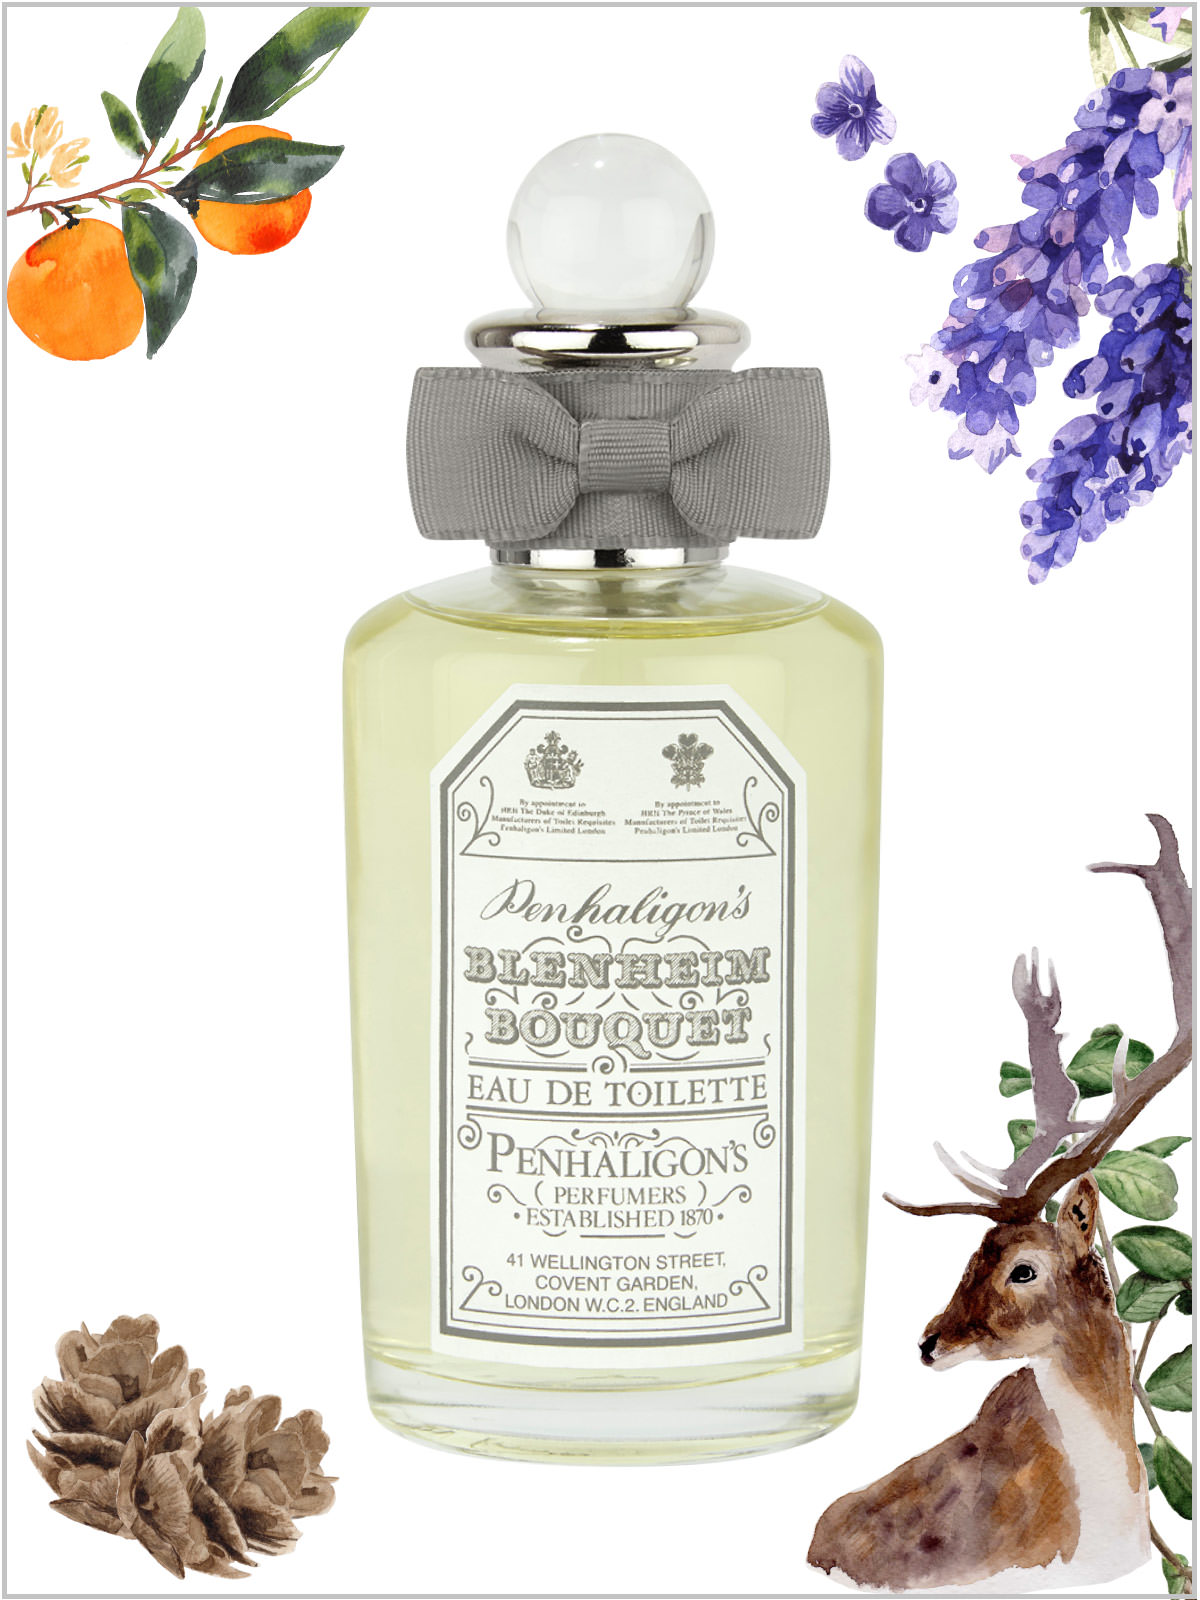 frederickandsophie-beauty-penhaligons-blenheim-bouquet-eaudetoilette